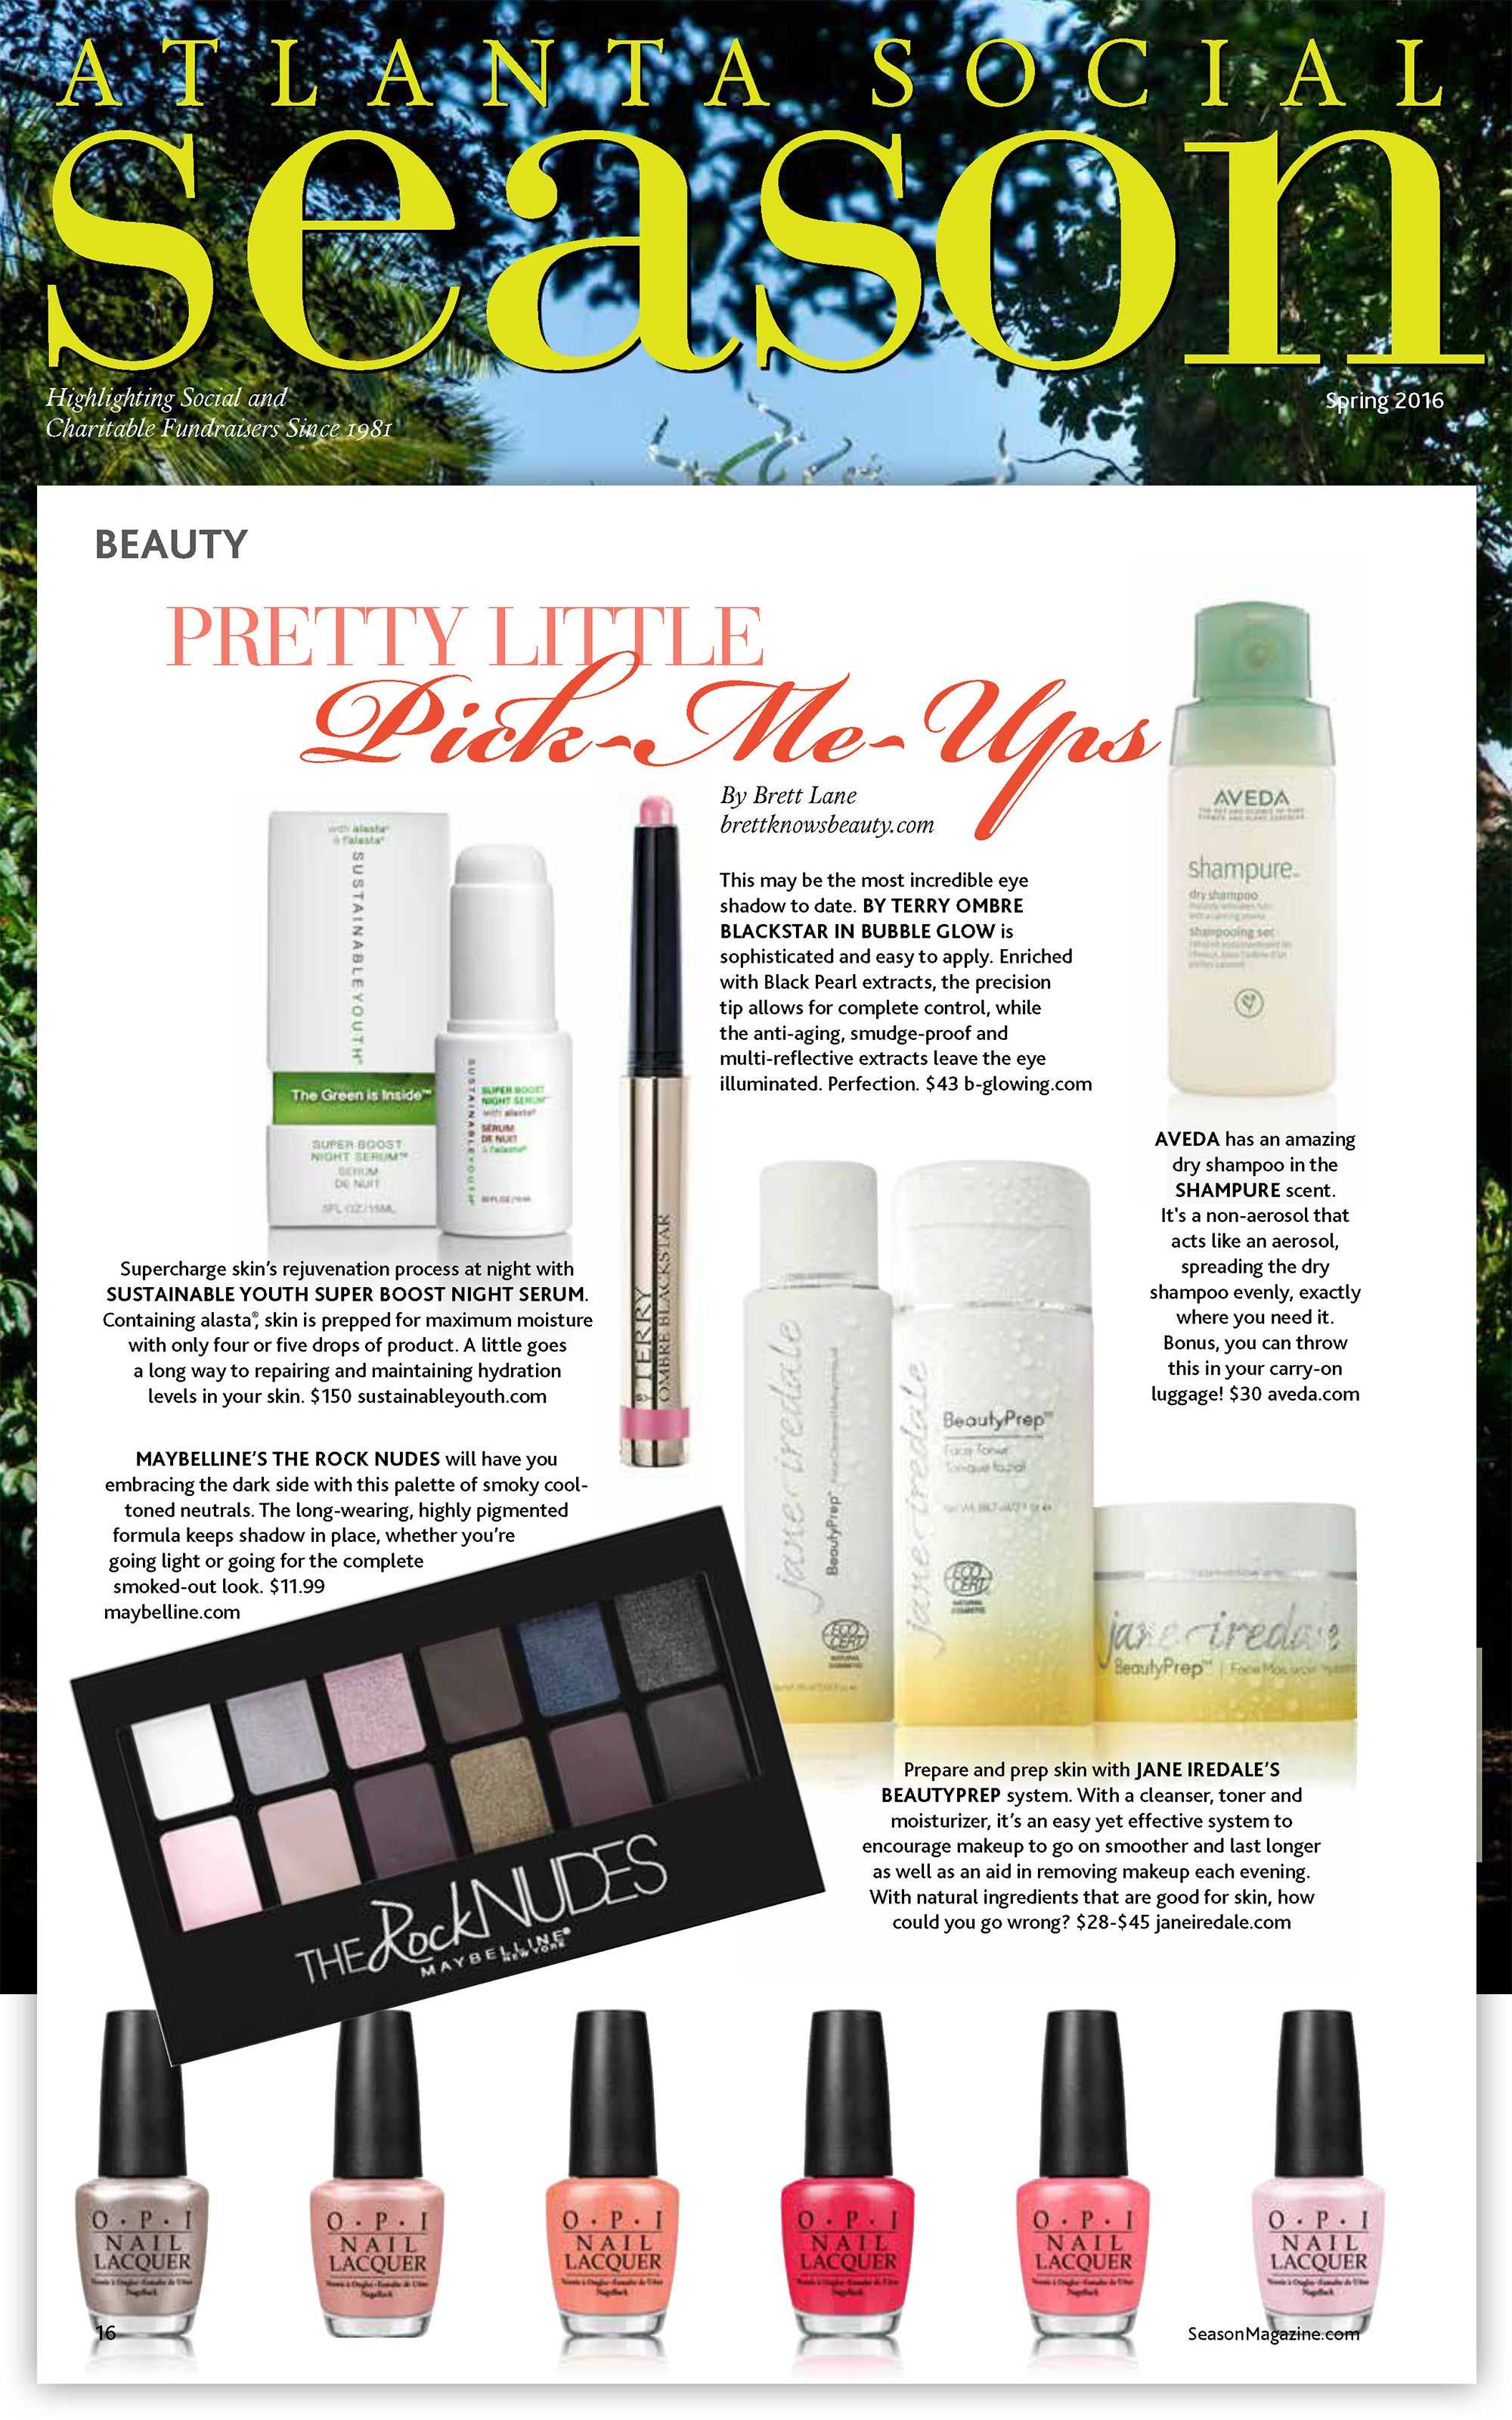 Sustainable Youth Super Boost Youth Night Serum featured in Atlanta Social Season Magazine, Spring 2016